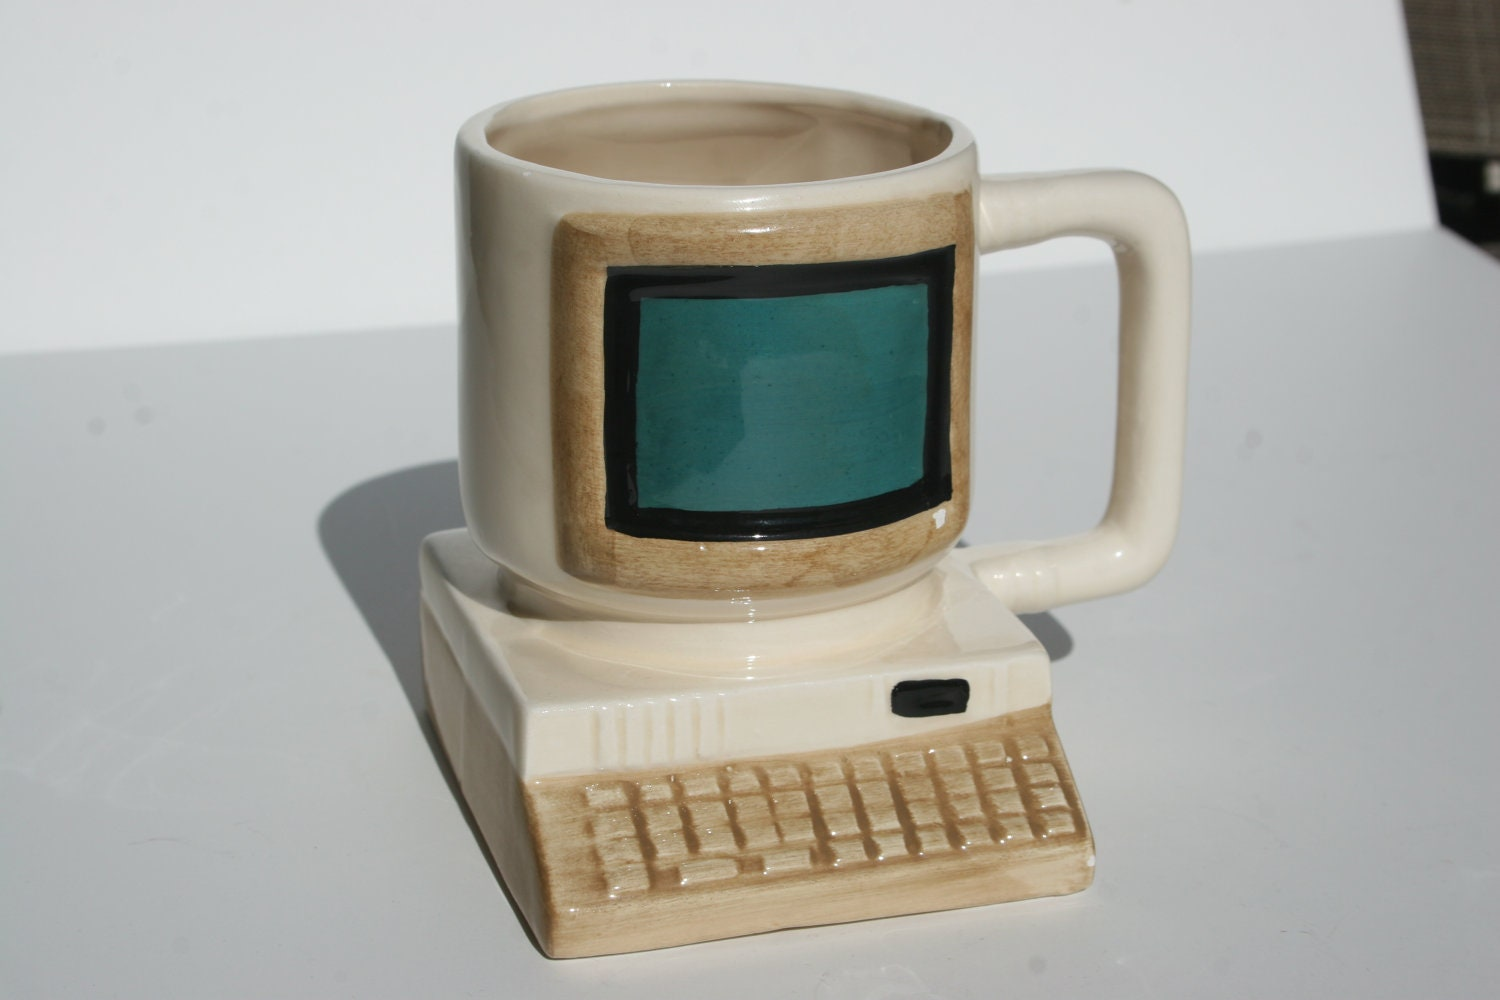 Huge Retro Vintage Computer Mug with  Keyboard Large CRT Monitor for Coffee Pens Paintbrushes or Air Plants in Blue Black Brown